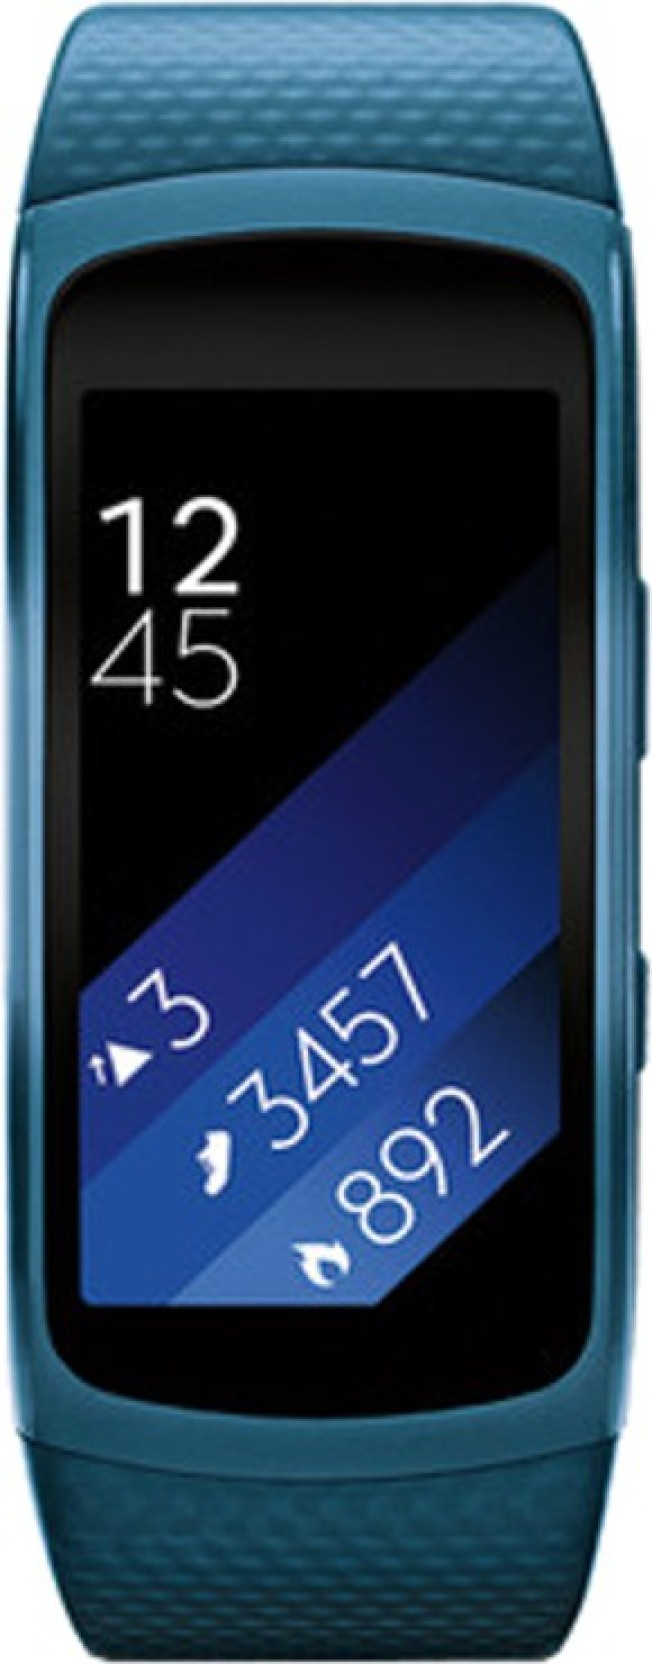 SAMSUNG Gear Fit 2 Blue Smartwatch (Blue)